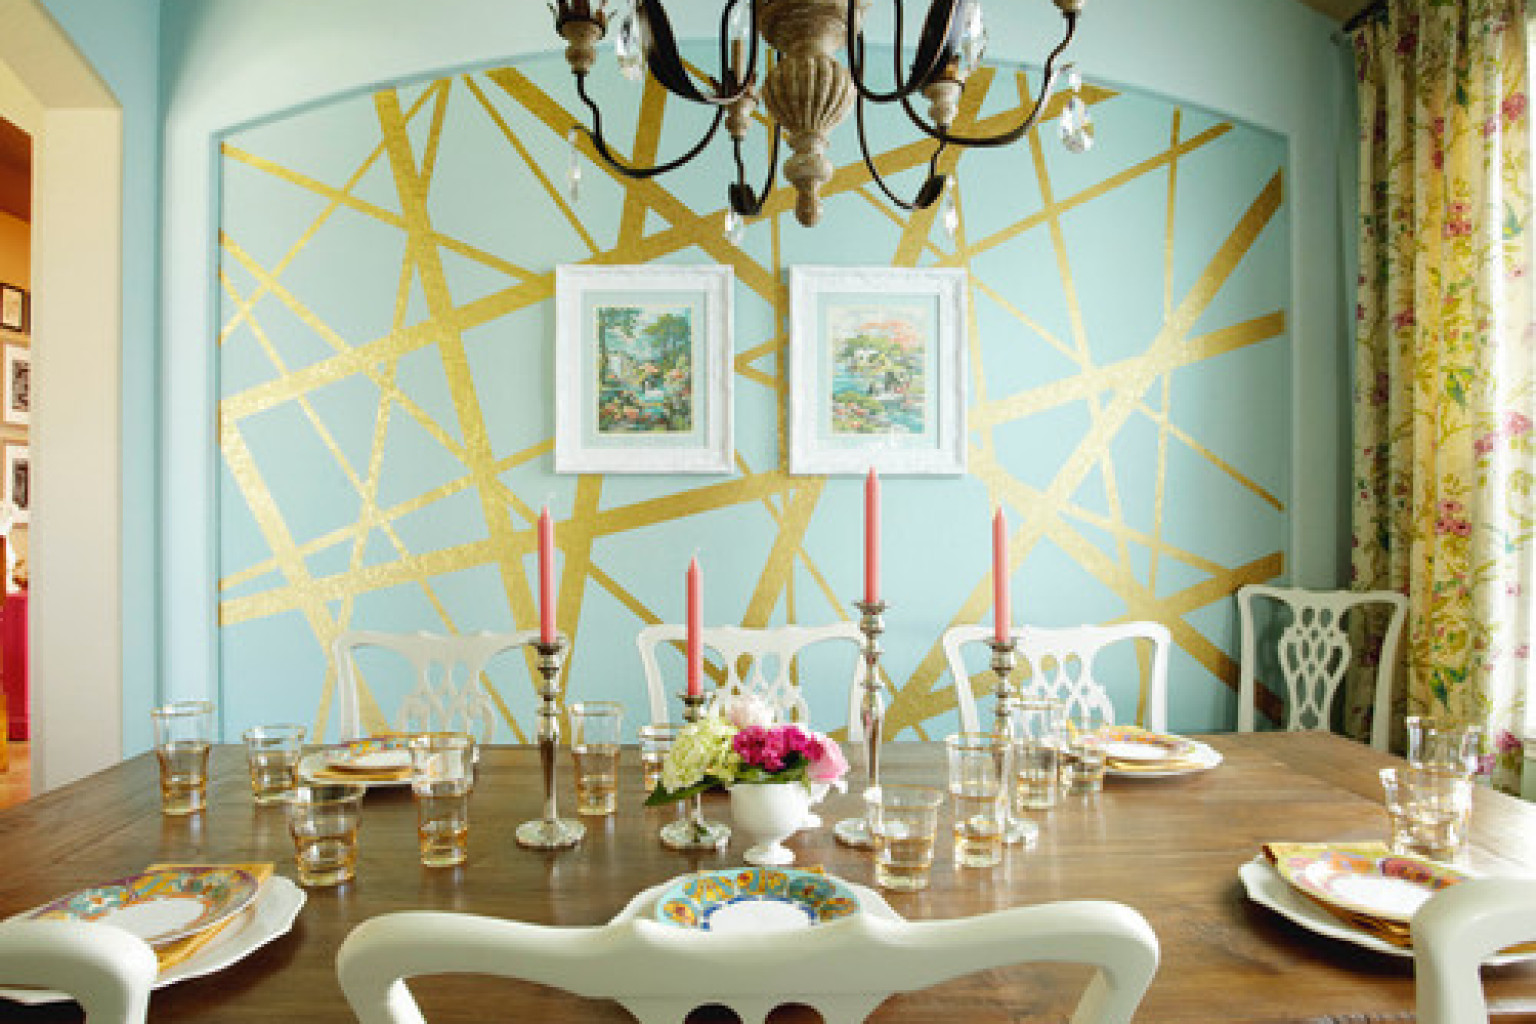 8 incredible interior paint ideas from real homes that turn a wall into a masterpiece photos huffpost - Home Interior Paint Design Ideas